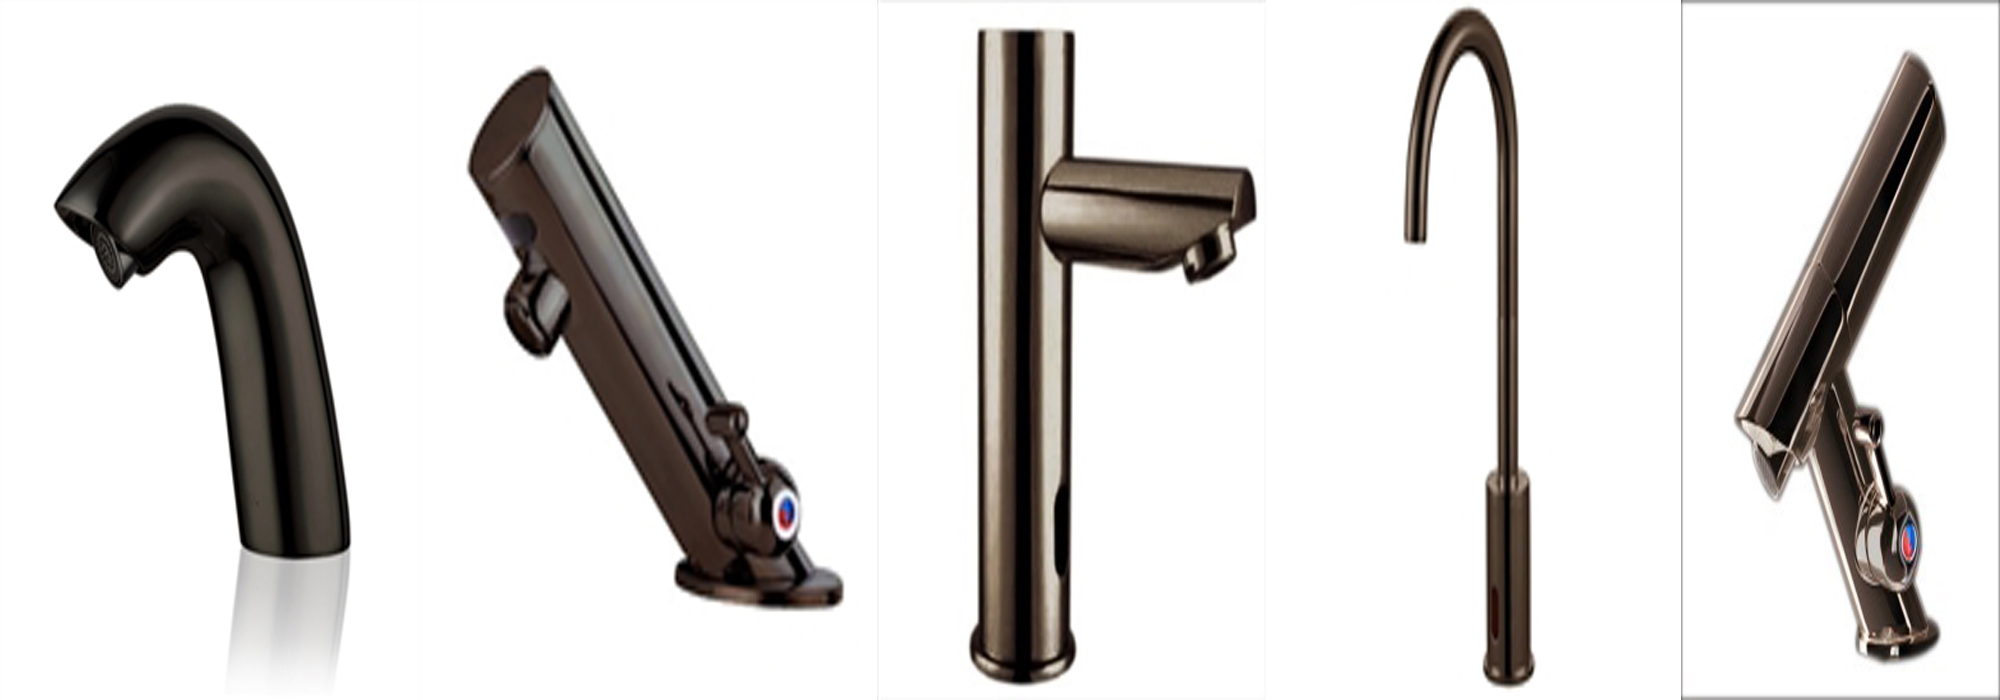 Sensor-Faucets-Oil-Rubbed-Bronze